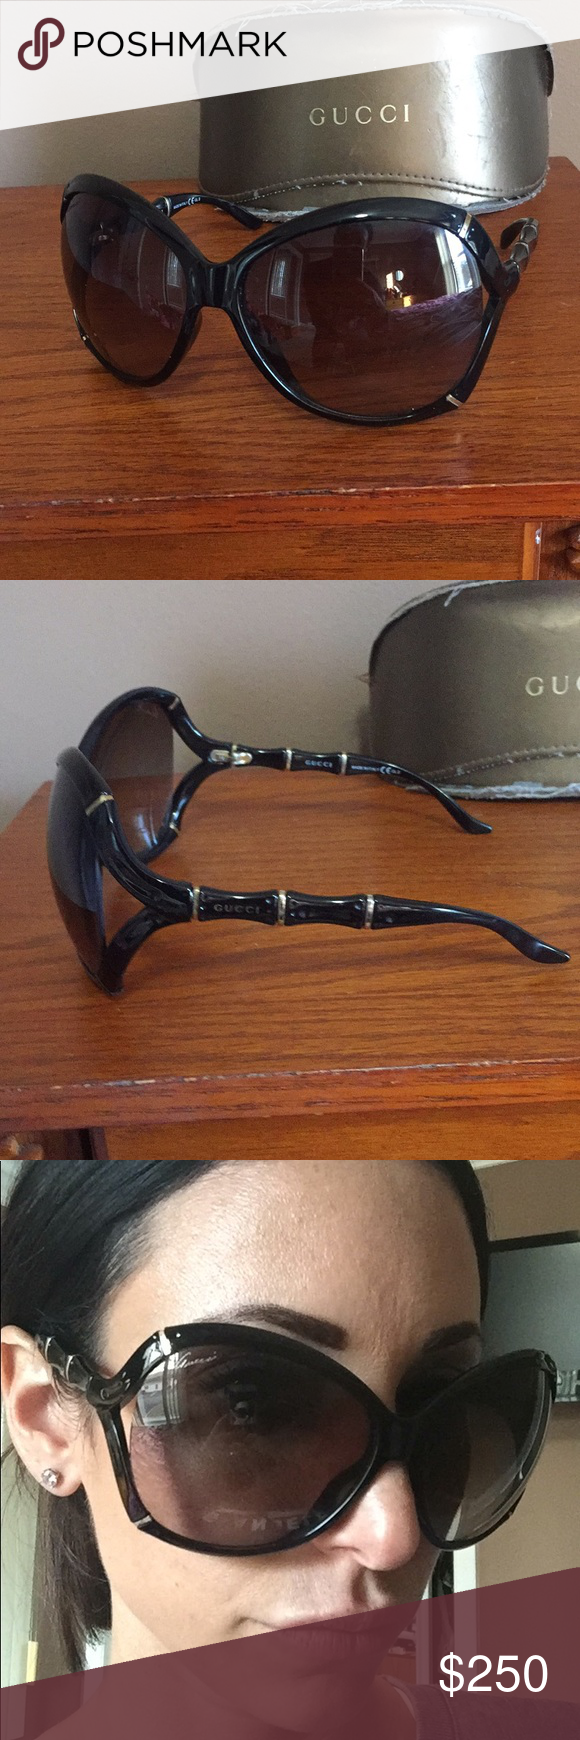 Gucci sunglassss Black gucci sunglasses. Great condition and comes with original gucci case. Black with smoky black lenses and gold hardware around frames and on sides. Gucci Accessories Sunglasses